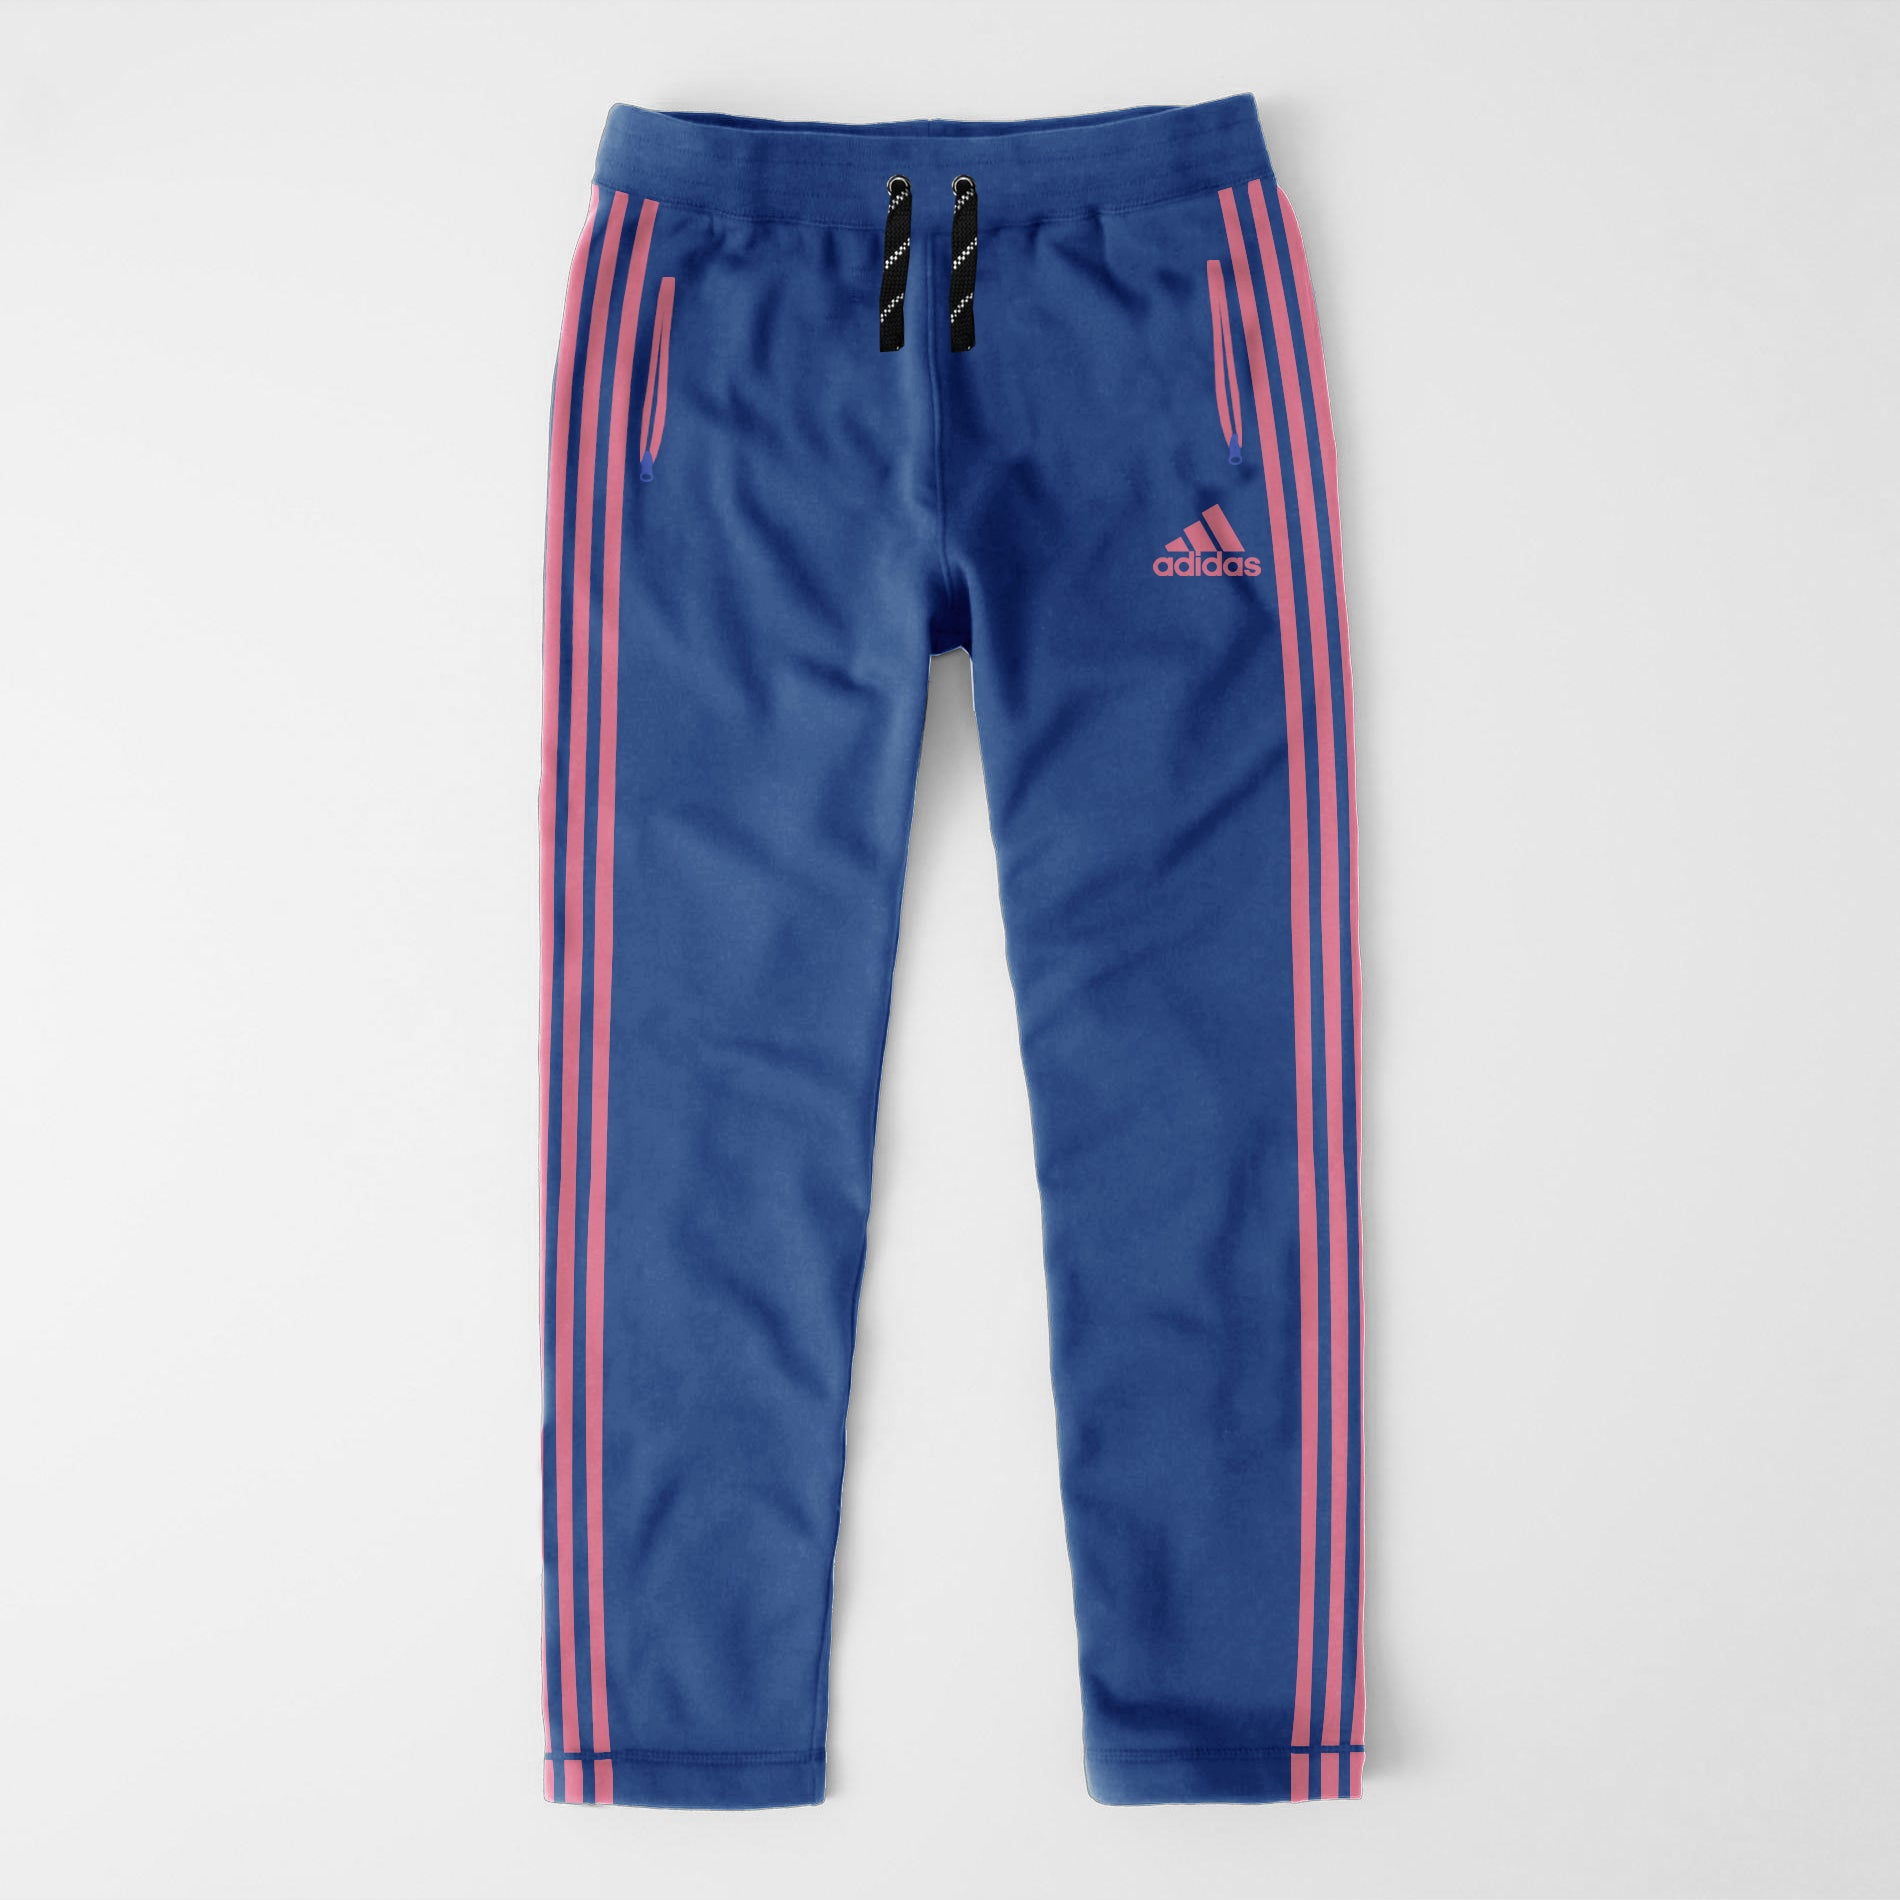 Adidas Single Jersey Regular Fit Trouser For Men-Dark Blue With Pink Stripes-NA8728